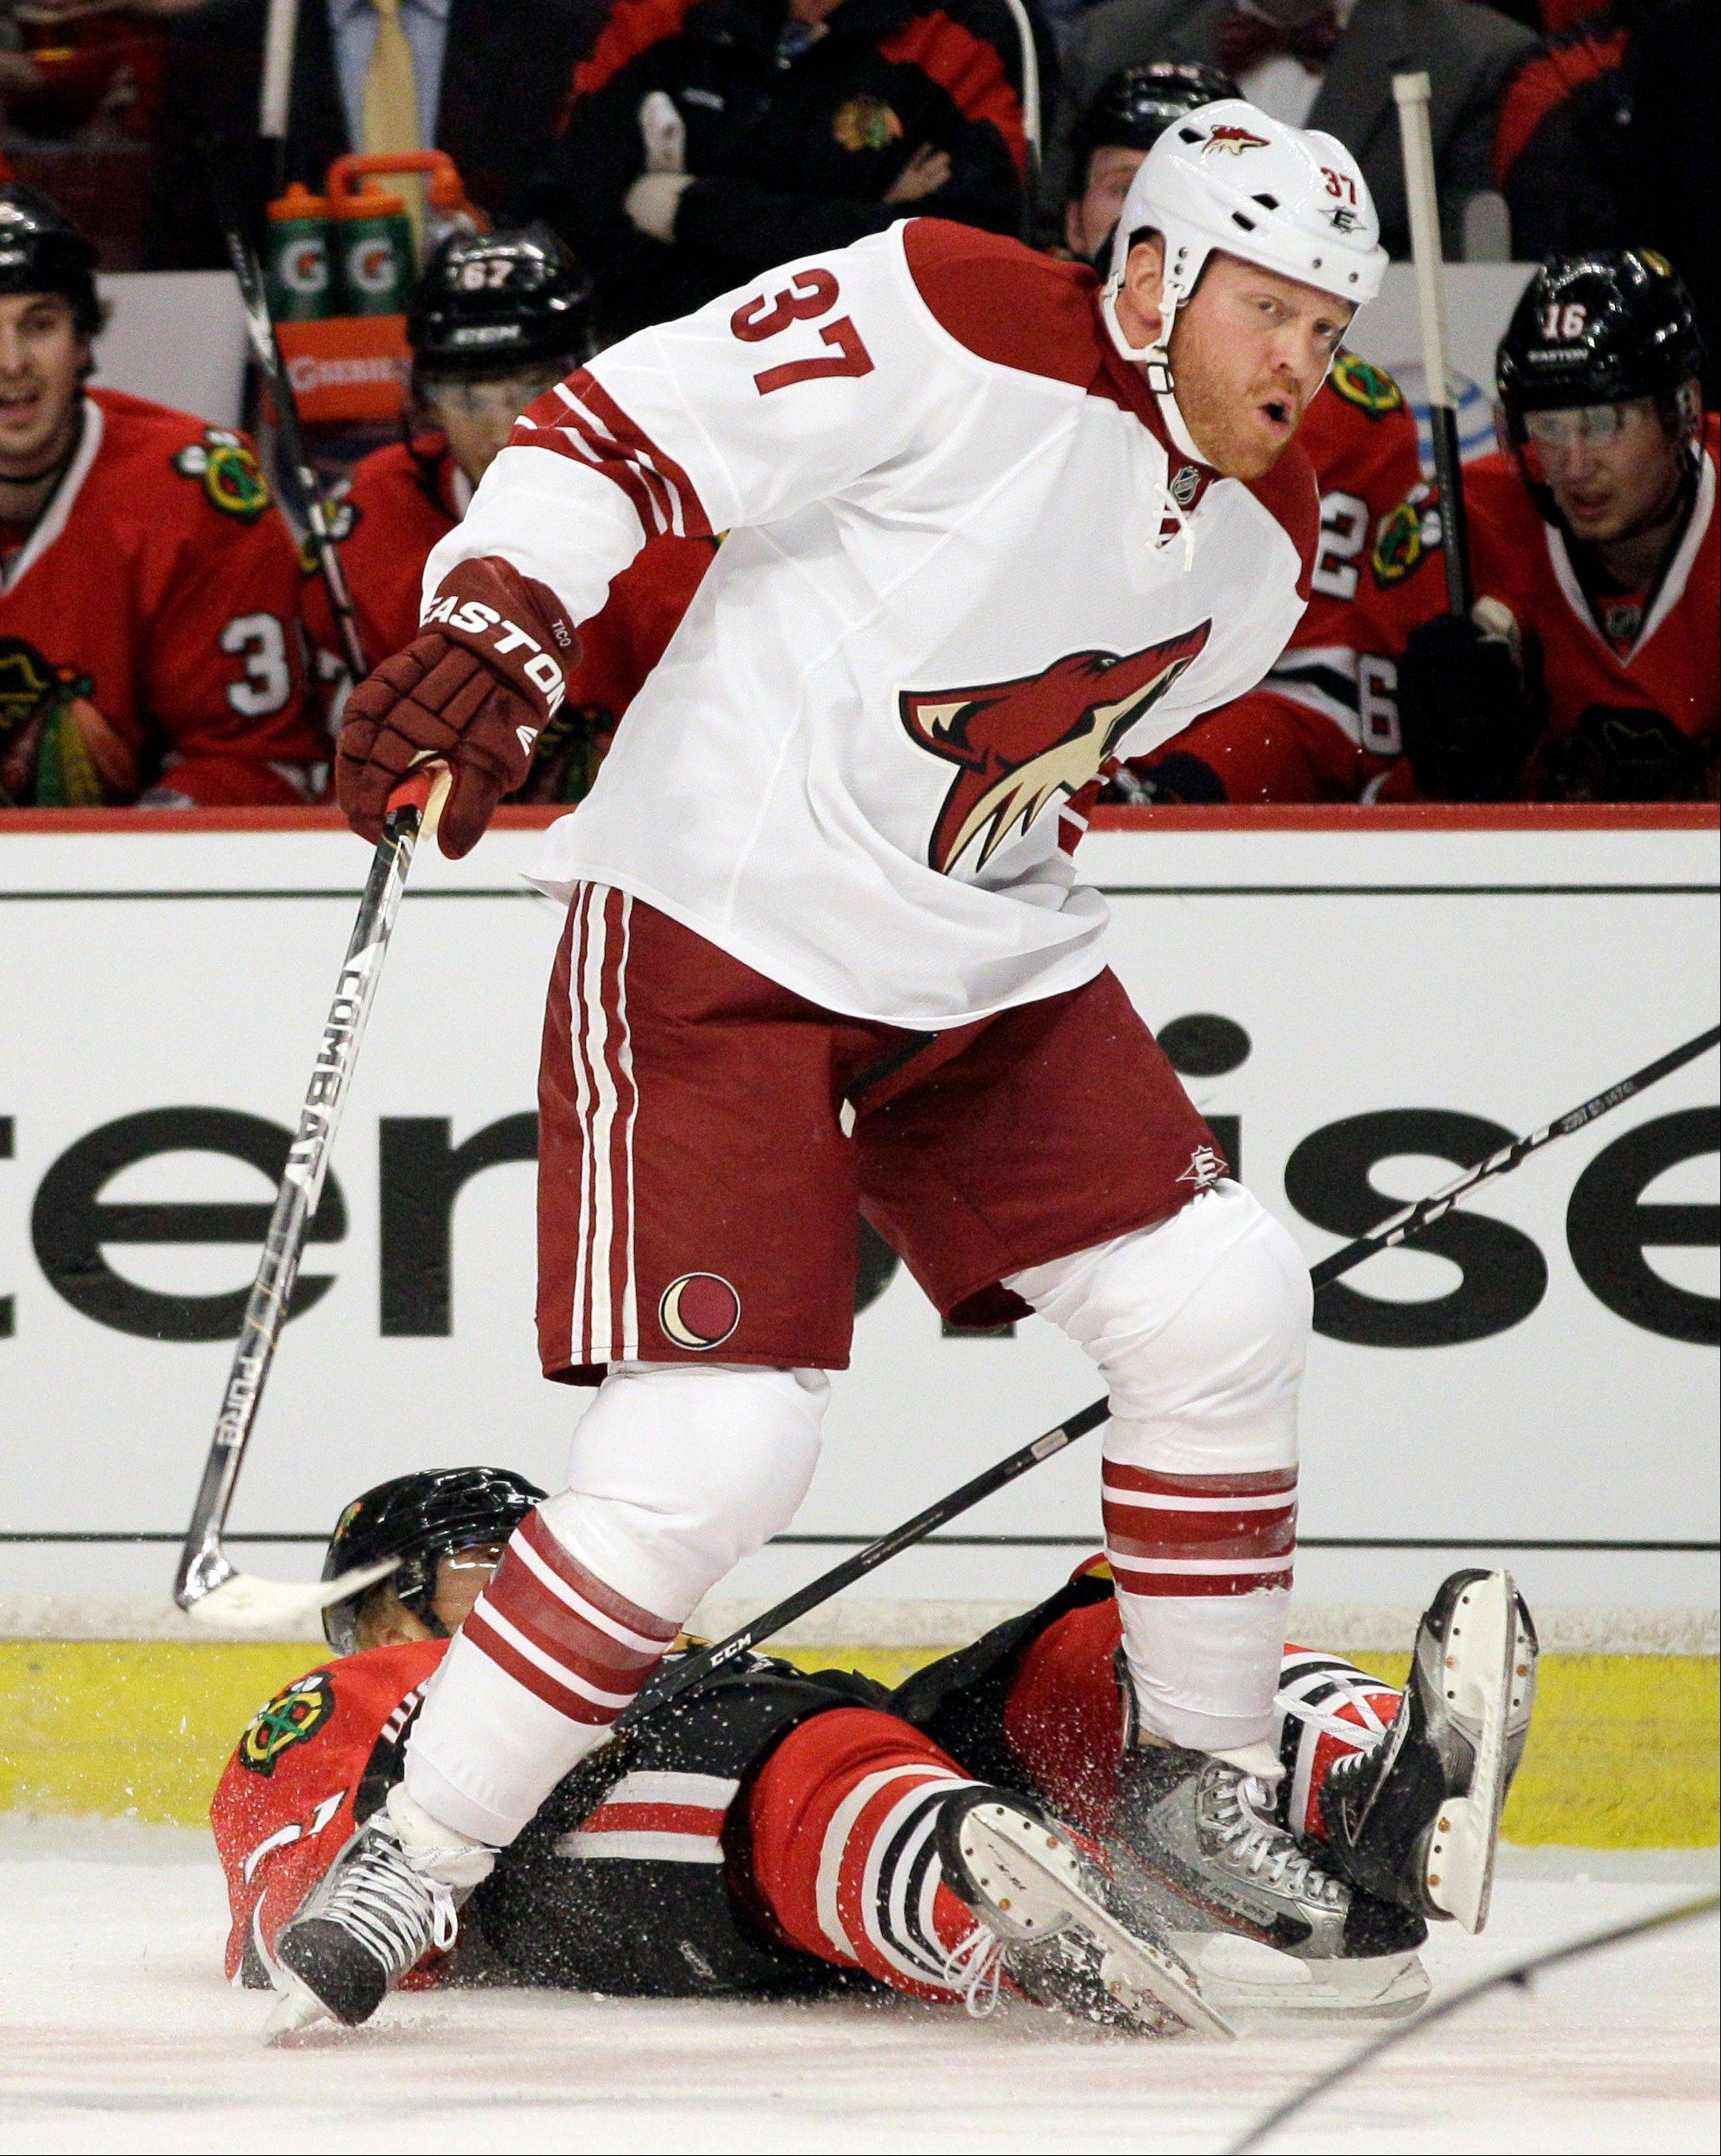 Blackhawks' Marian Hossa (81) of Slovakia, falls down after hit from Phoenix Coyotes' Raffi Torres (37) during the first period of Game 3 of an NHL hockey Stanley Cup first-round playoff series in Chicago, Tuesday, April 17, 2012.